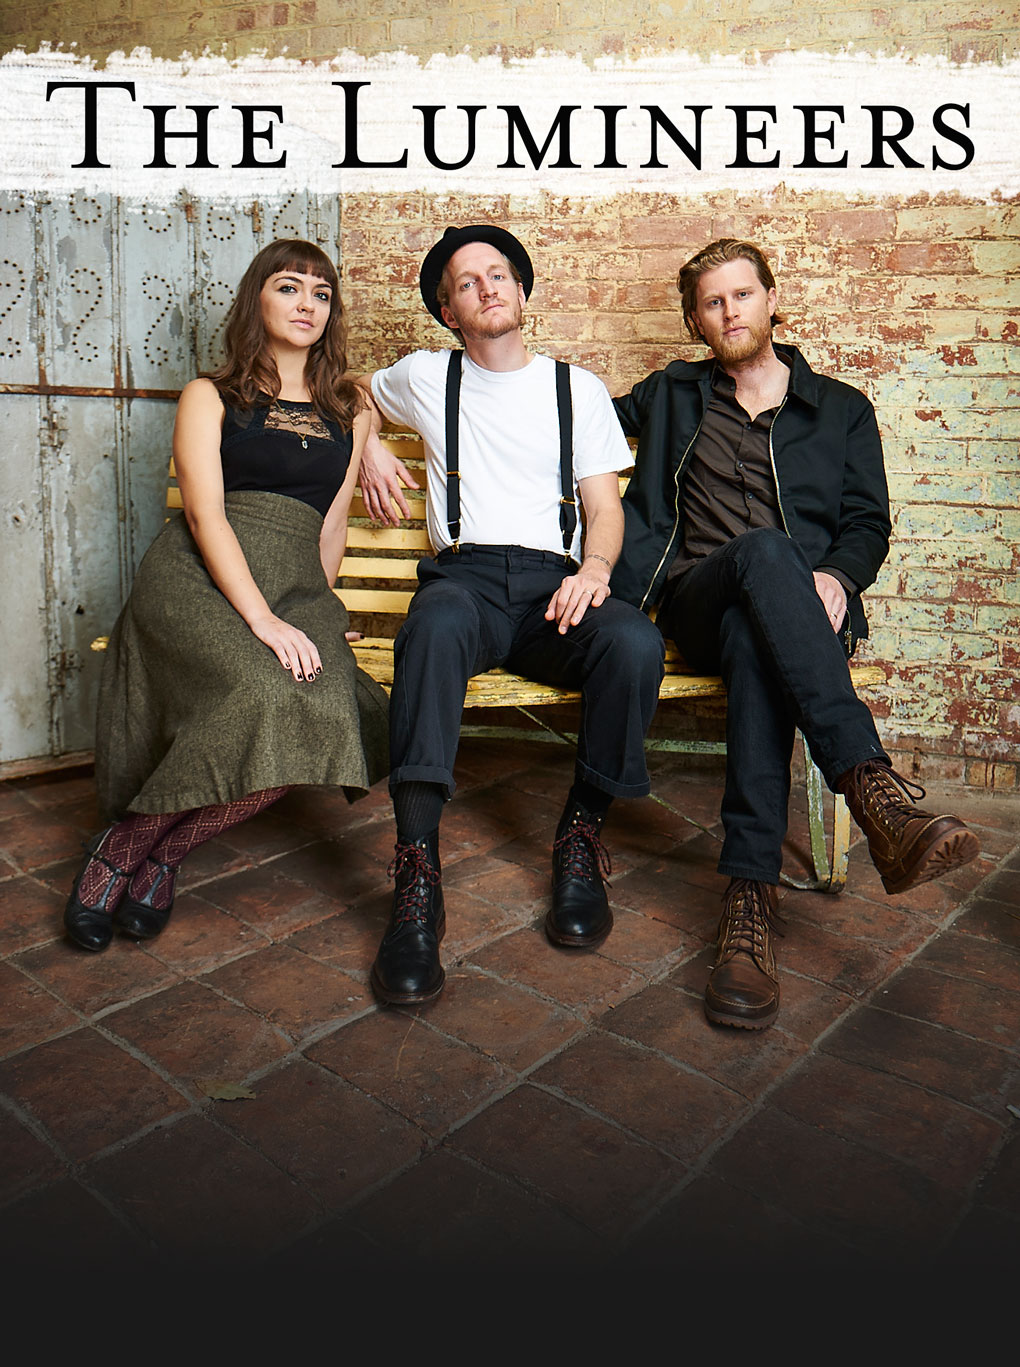 The Lumineers: The Cleopatra World Tour Continues